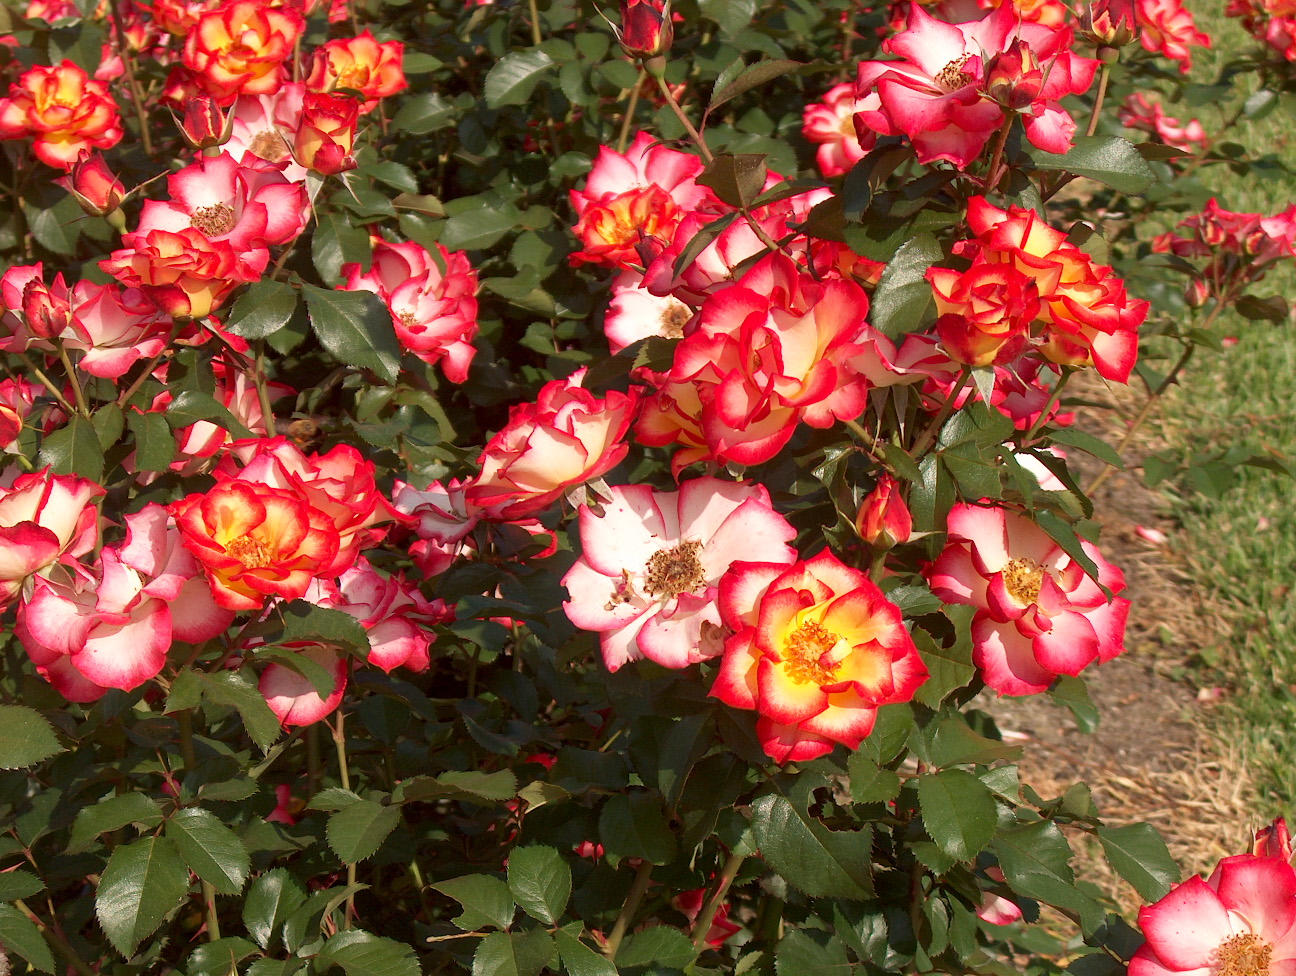 plant roses in winter for beautiful blooms lsu agcenter. Black Bedroom Furniture Sets. Home Design Ideas